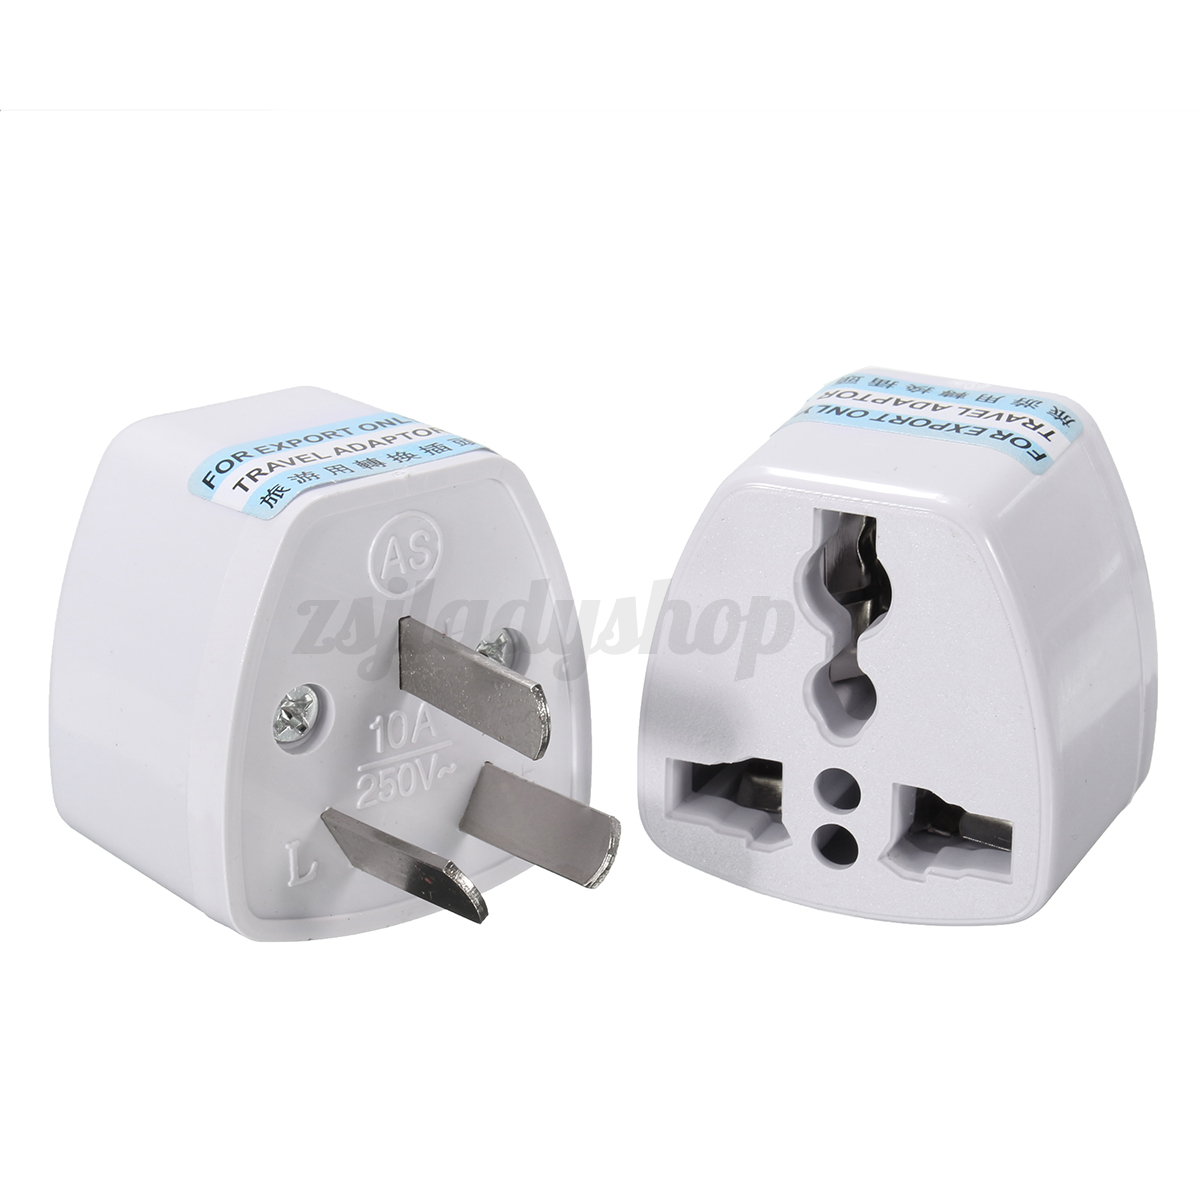 Eu To Aus Travel Adapter Qc2 0 Qc3 0 Adapter 9v 1 67a Android Adapter Realm Microsoft Xbox Wireless Adapter Xbox 360: 2x EU UK US To AU Australian Travel Power Plug Adapter